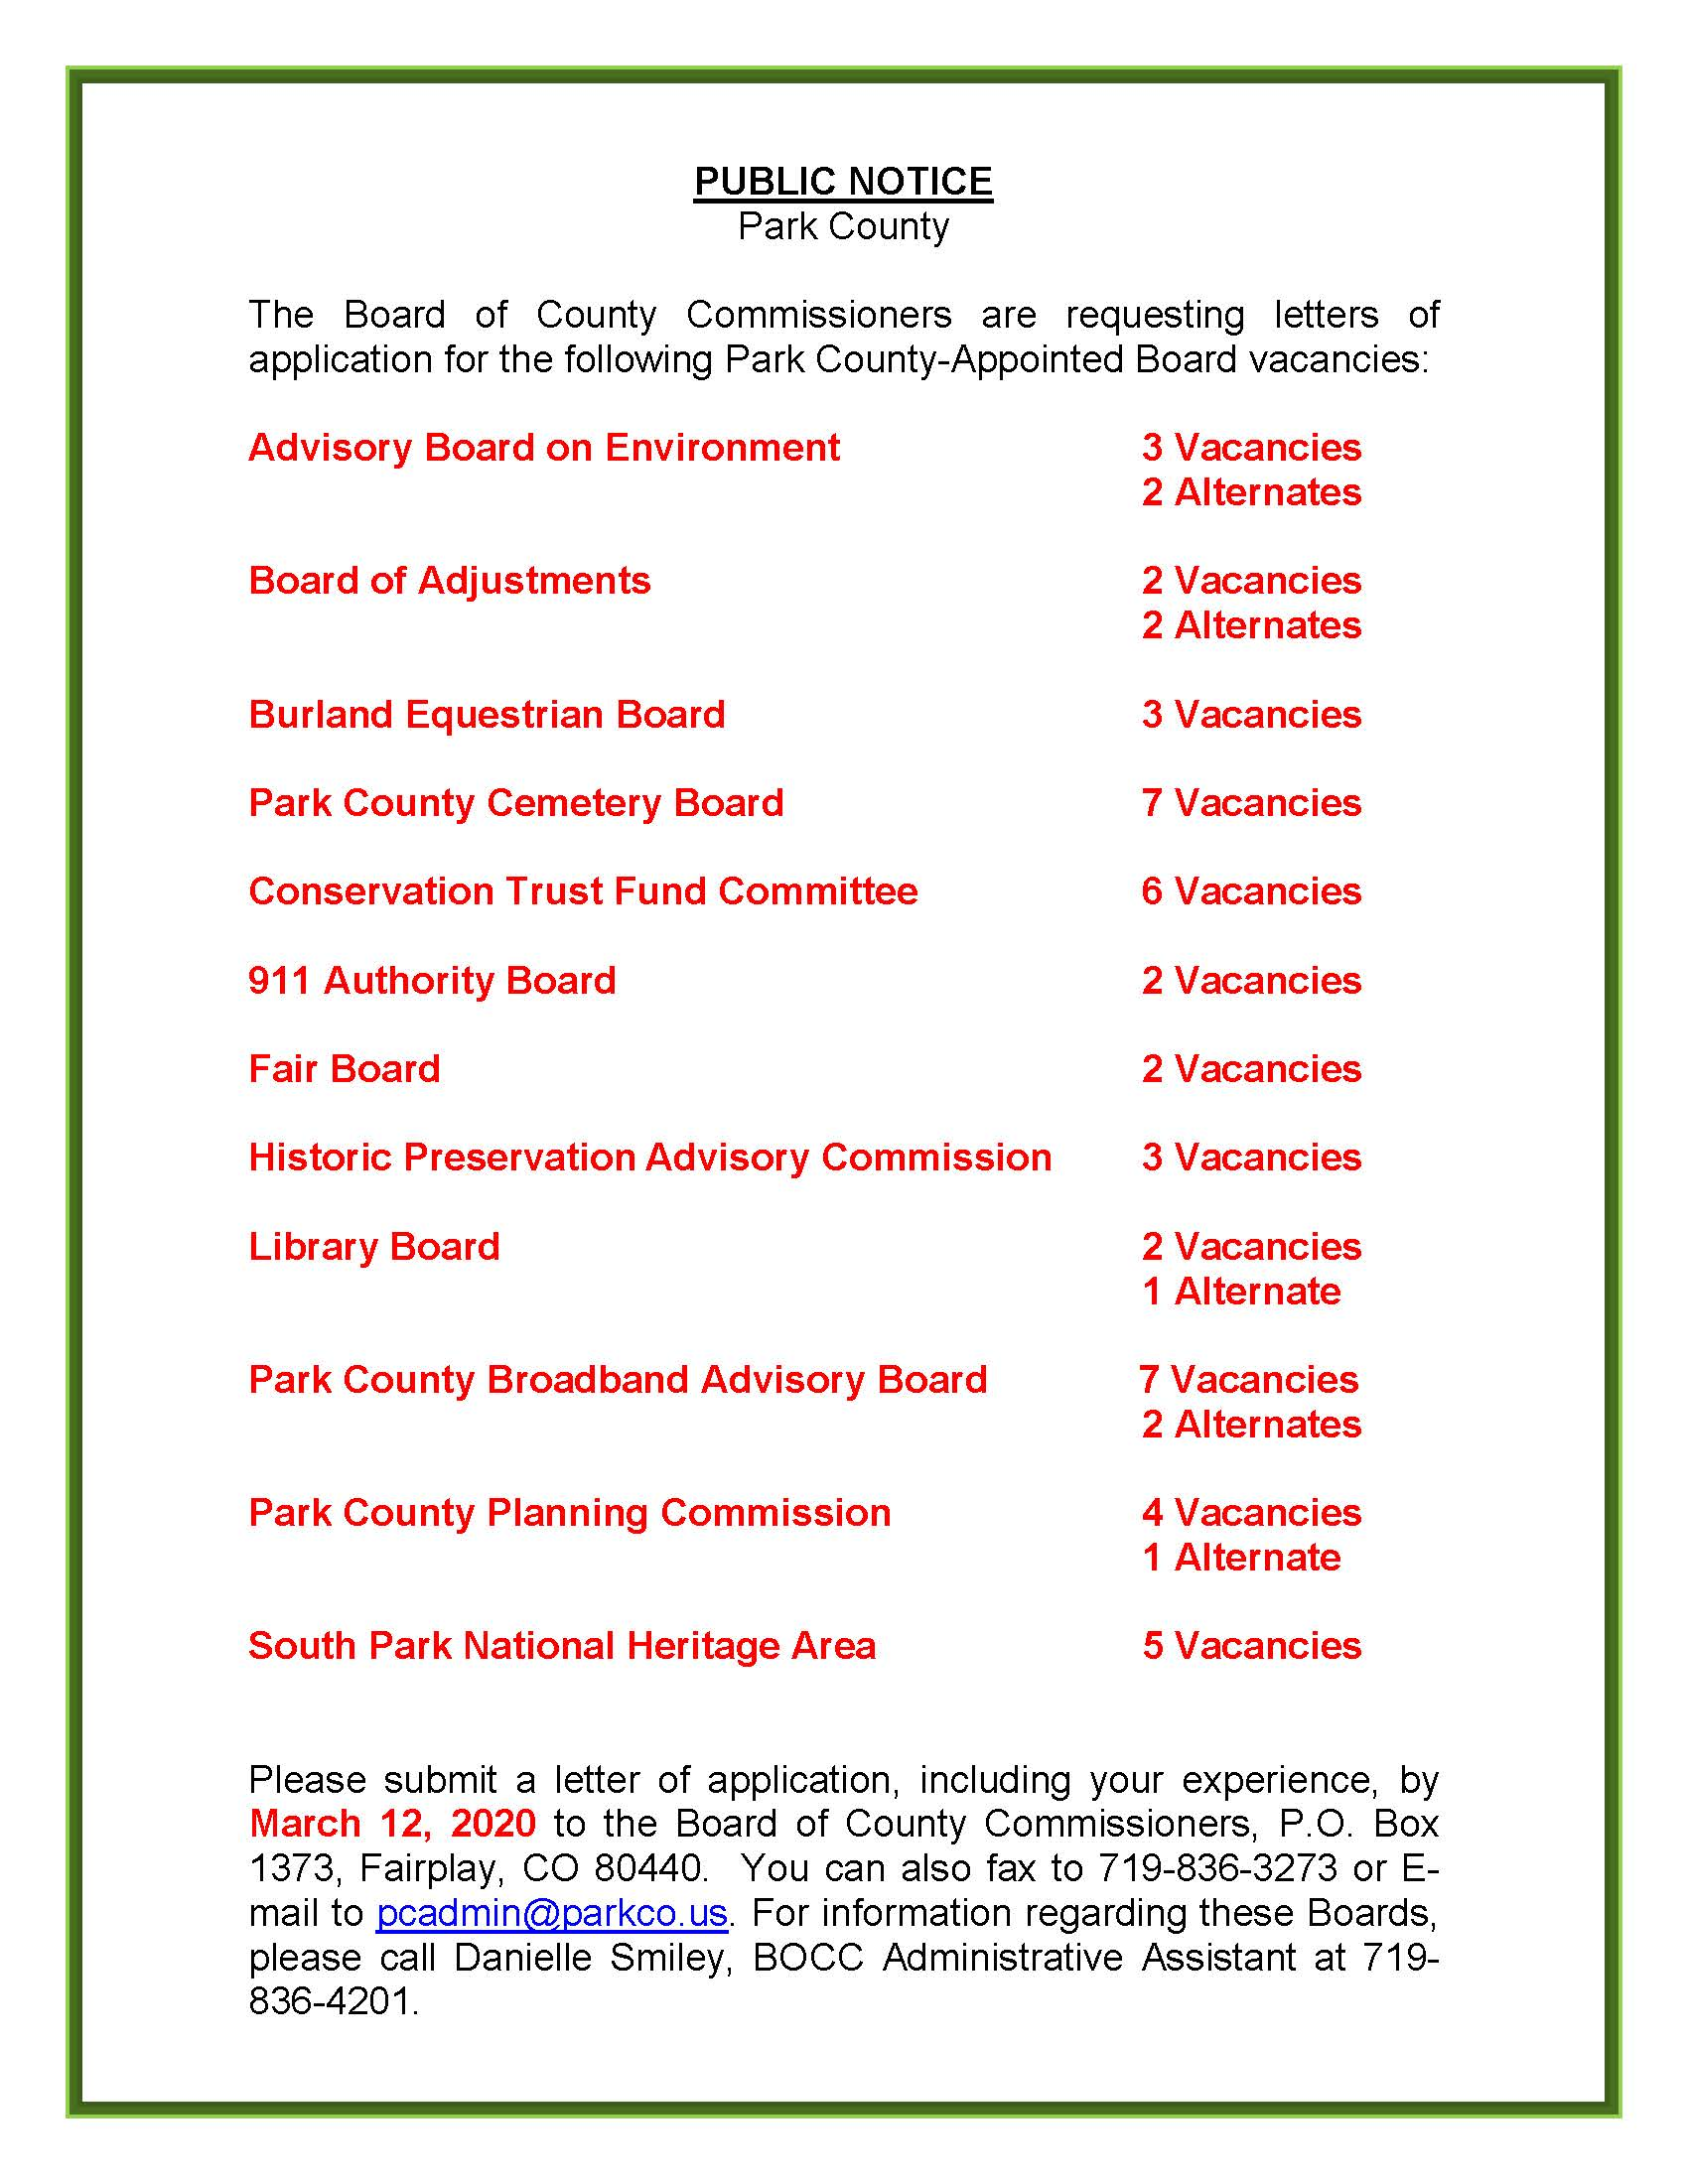 County Appointed Board Vacancies